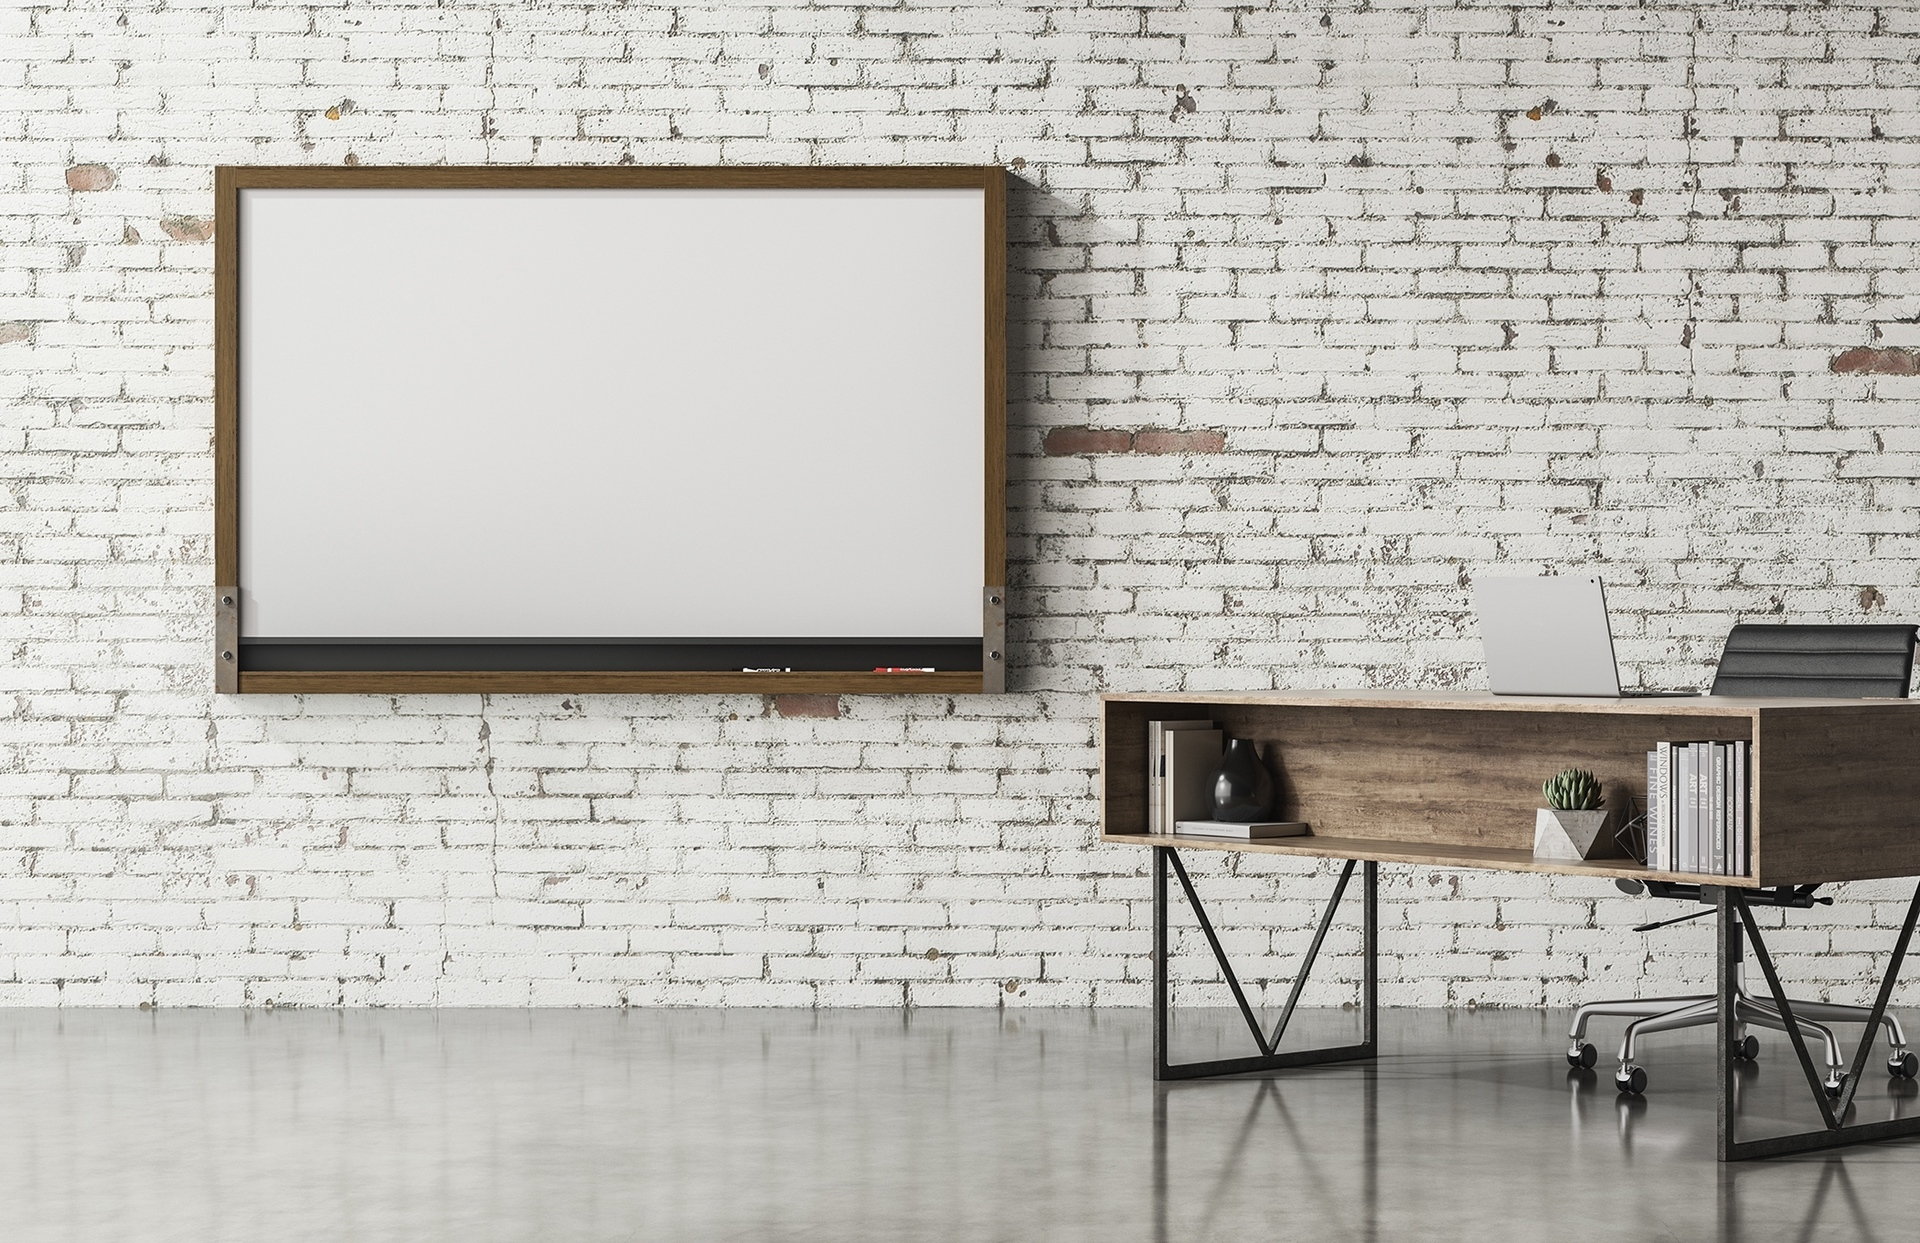 In Claridge's new MIX line of highly customizable, mixed-material dry erase whiteboards and tackboards, those who design for collaborative communication environments now have more flexibility to achieve their desired aesthetic.